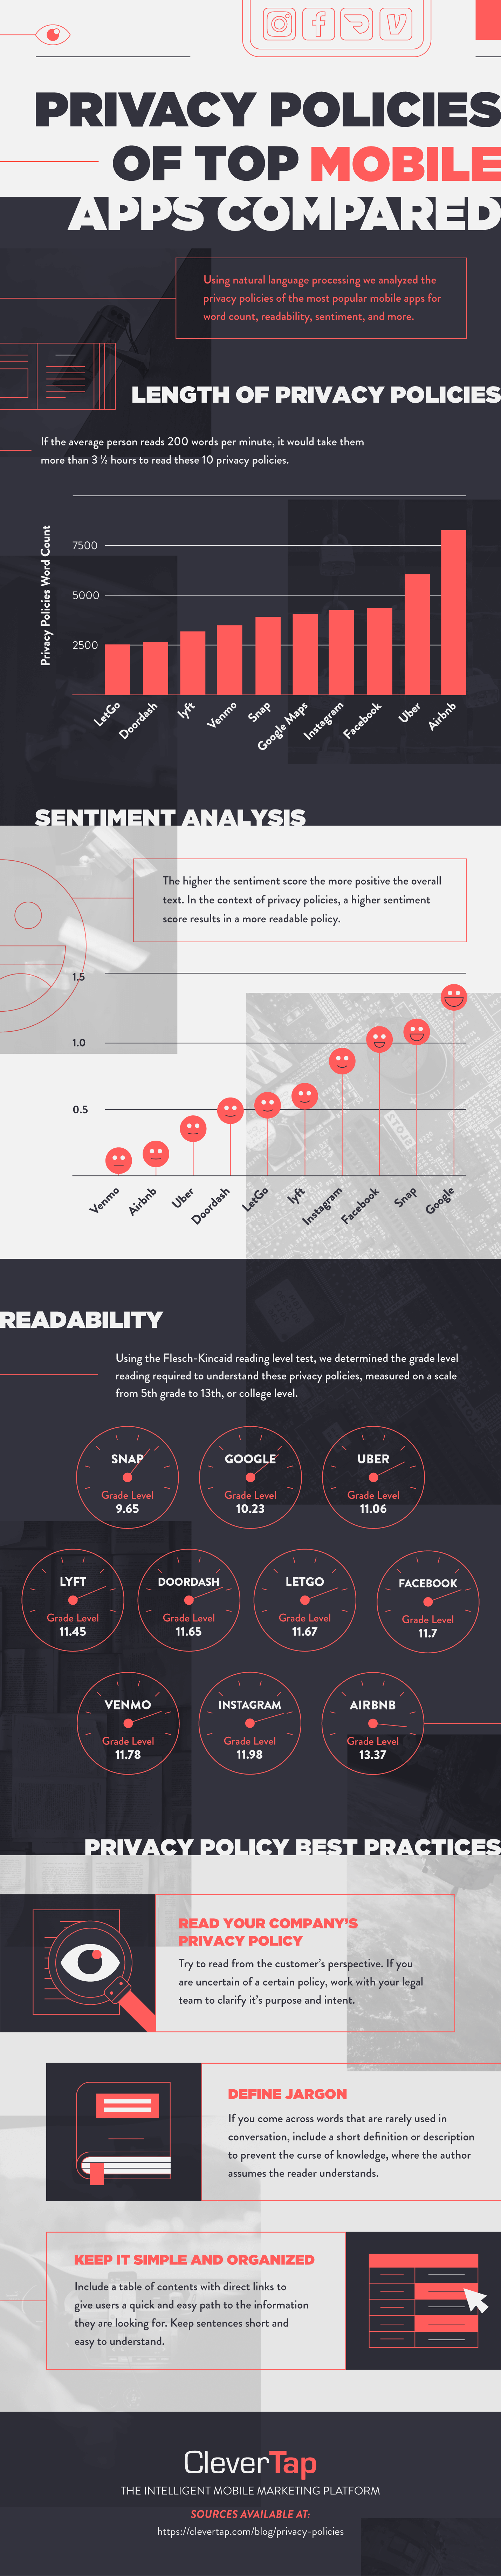 privacy policies of popular apps compared and analyzed for readability infographic